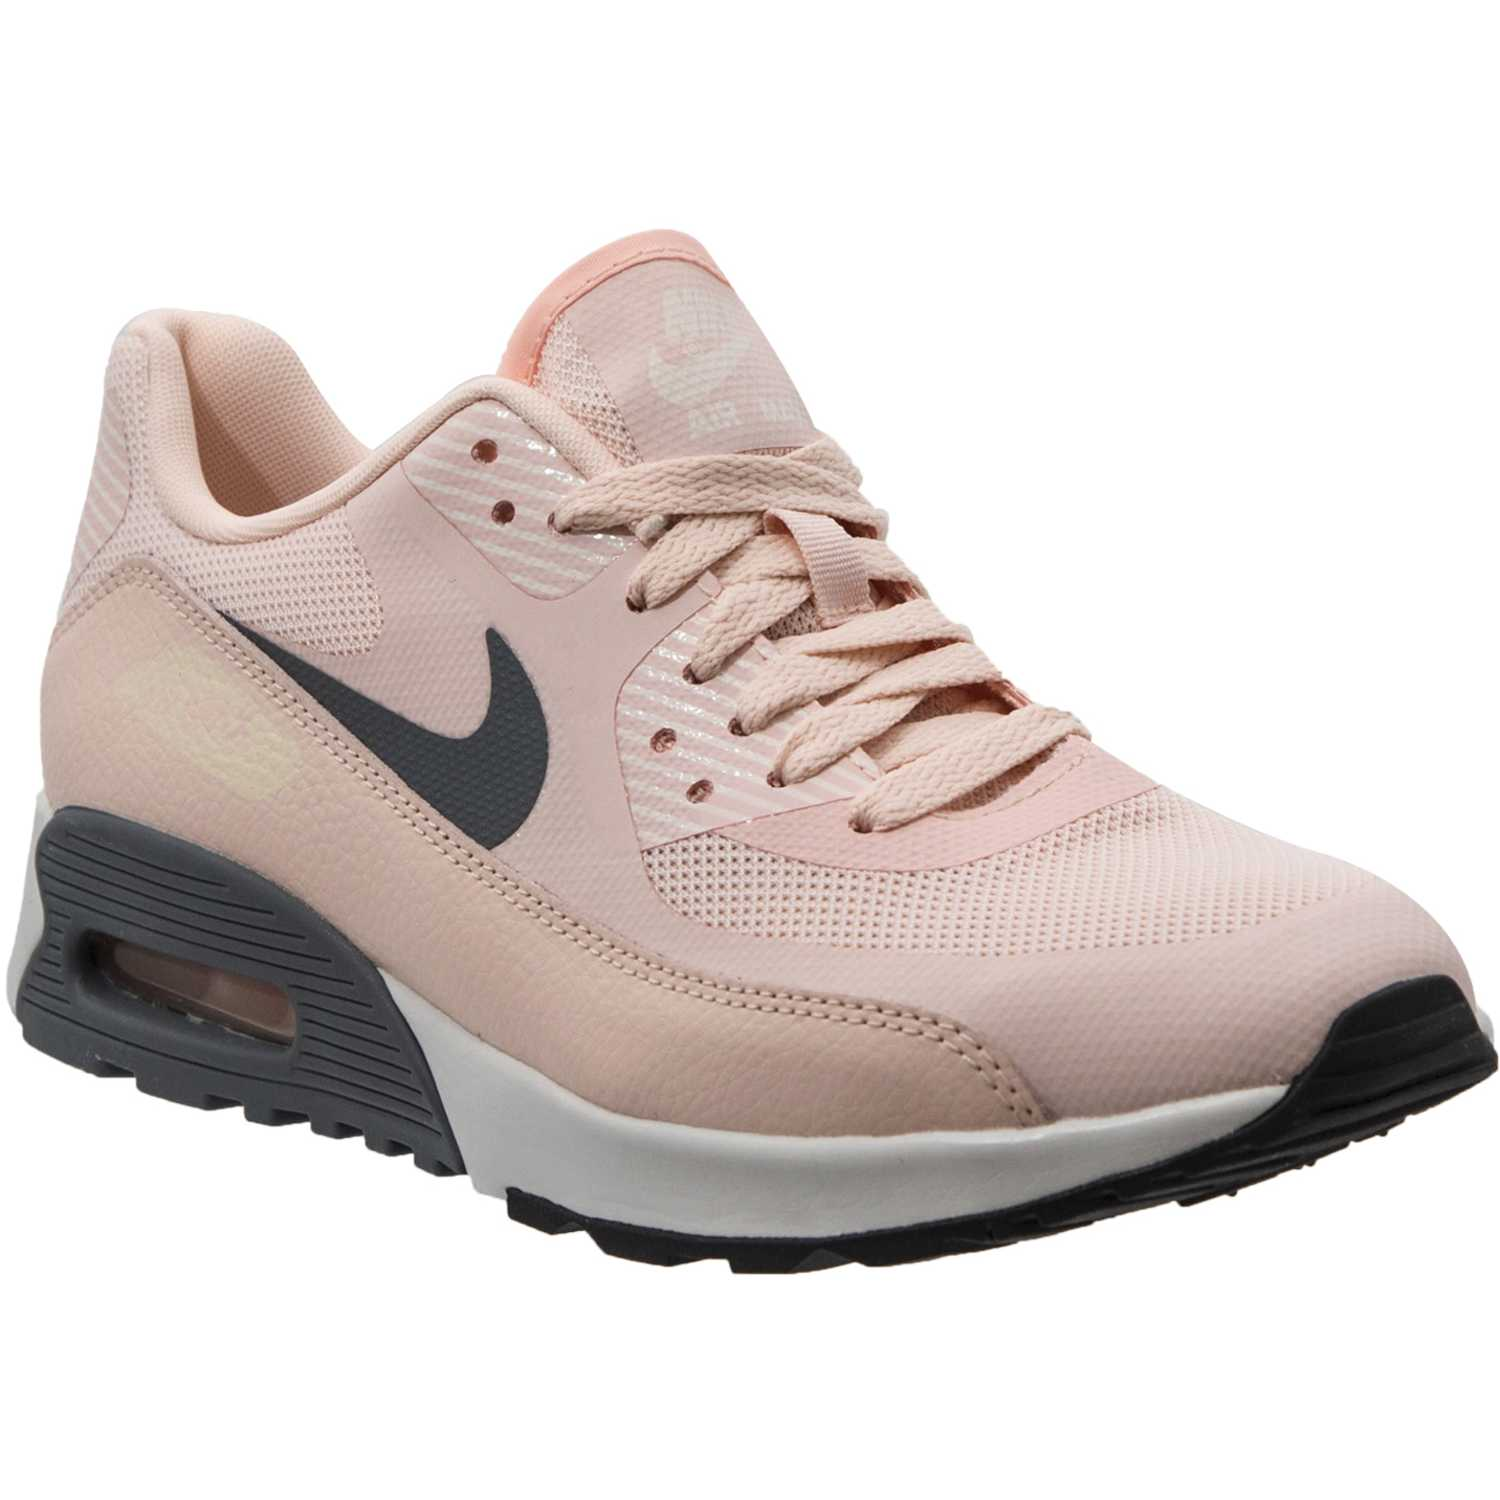 Nike wmns air max 90 ultra 2.0 Palo rosa Walking